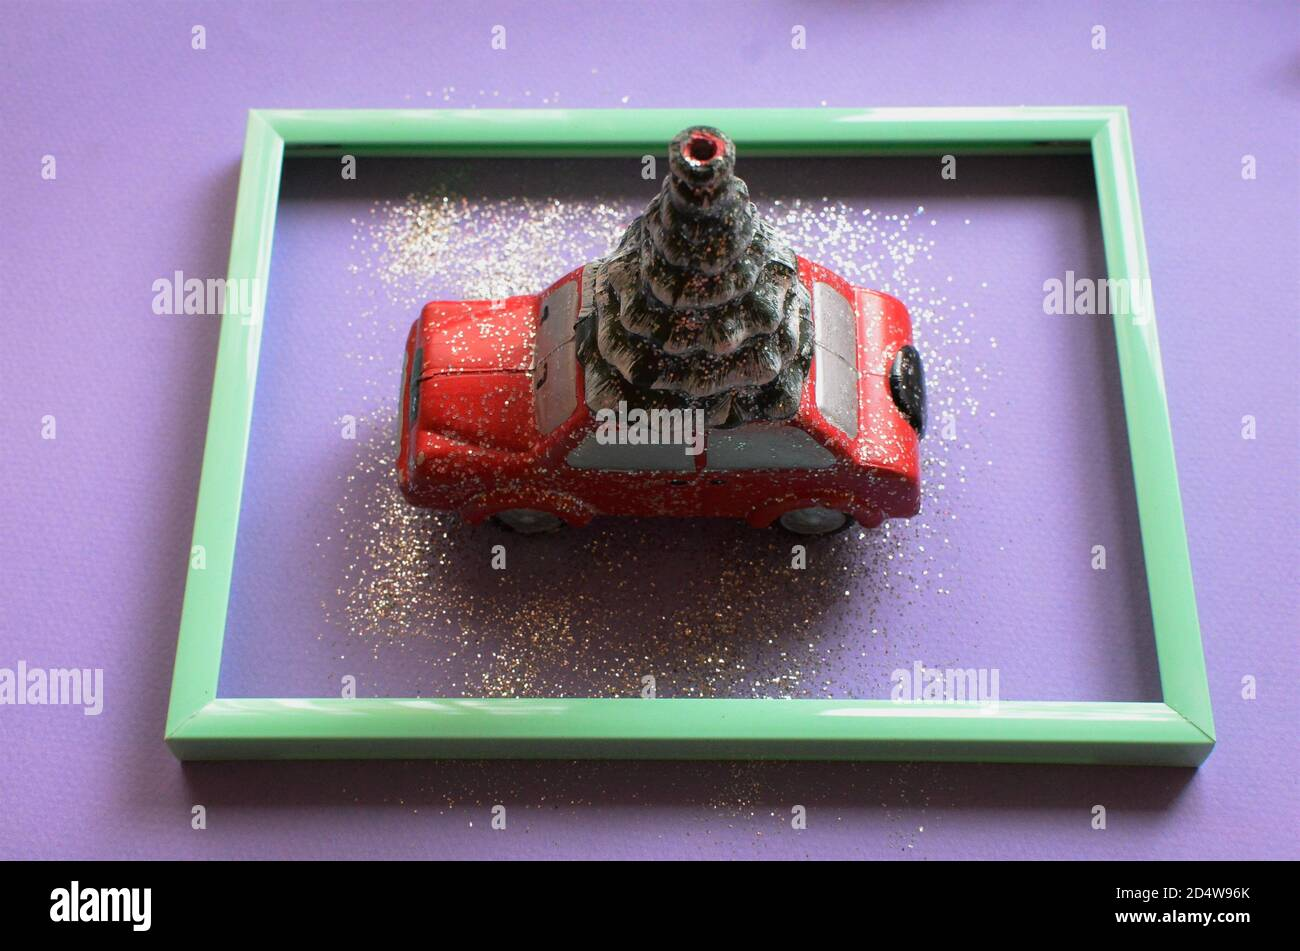 A Red Car With A Christmas Tree In A Mint Green Frame On A Purple Background Creative New Year Concept Stock Photo Alamy